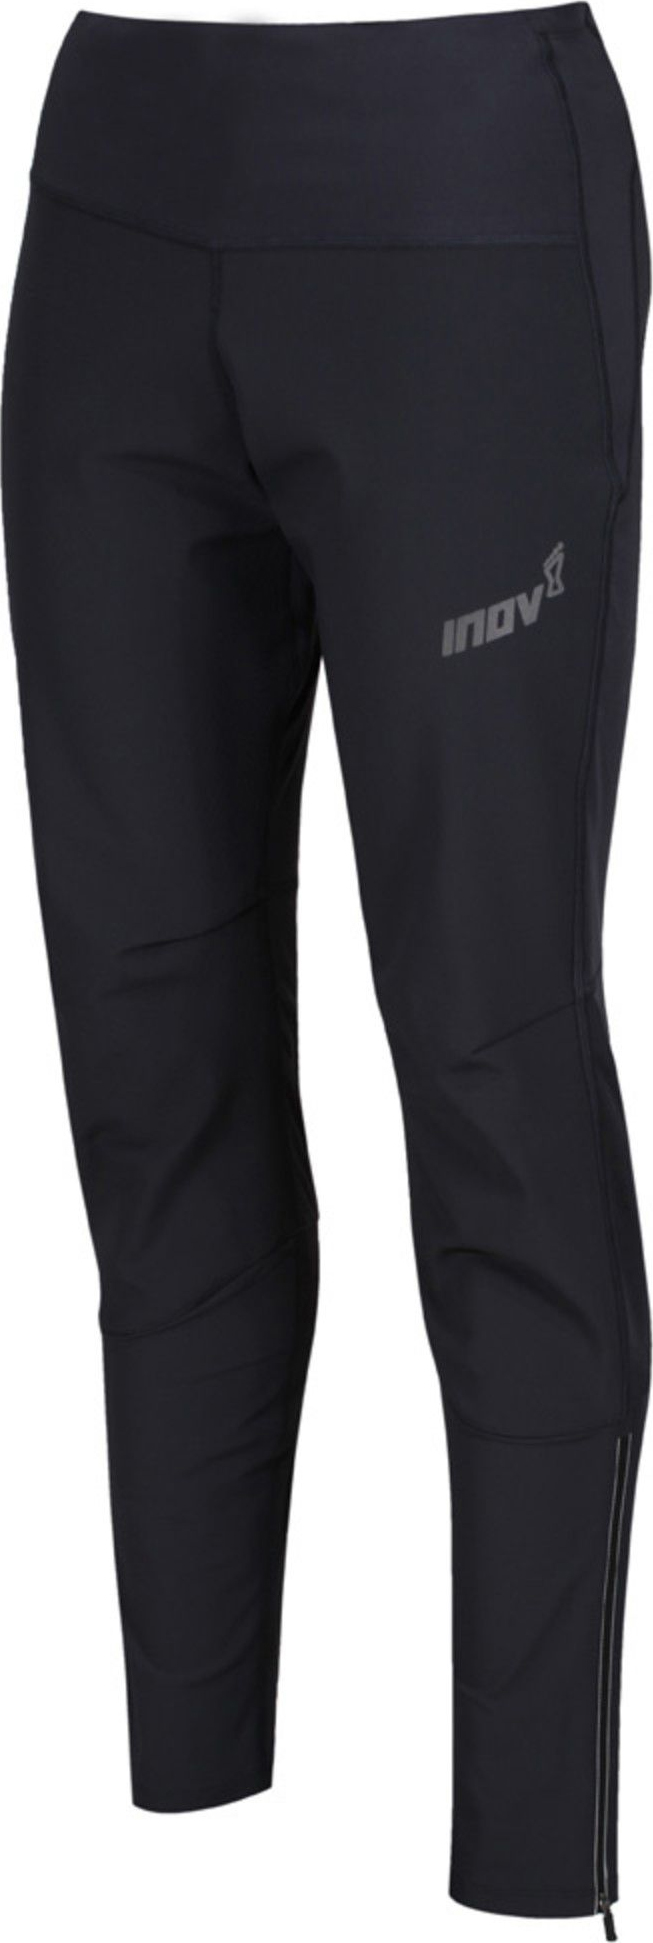 INOV-8 INOV-8 WINTER Tights Bokavédő